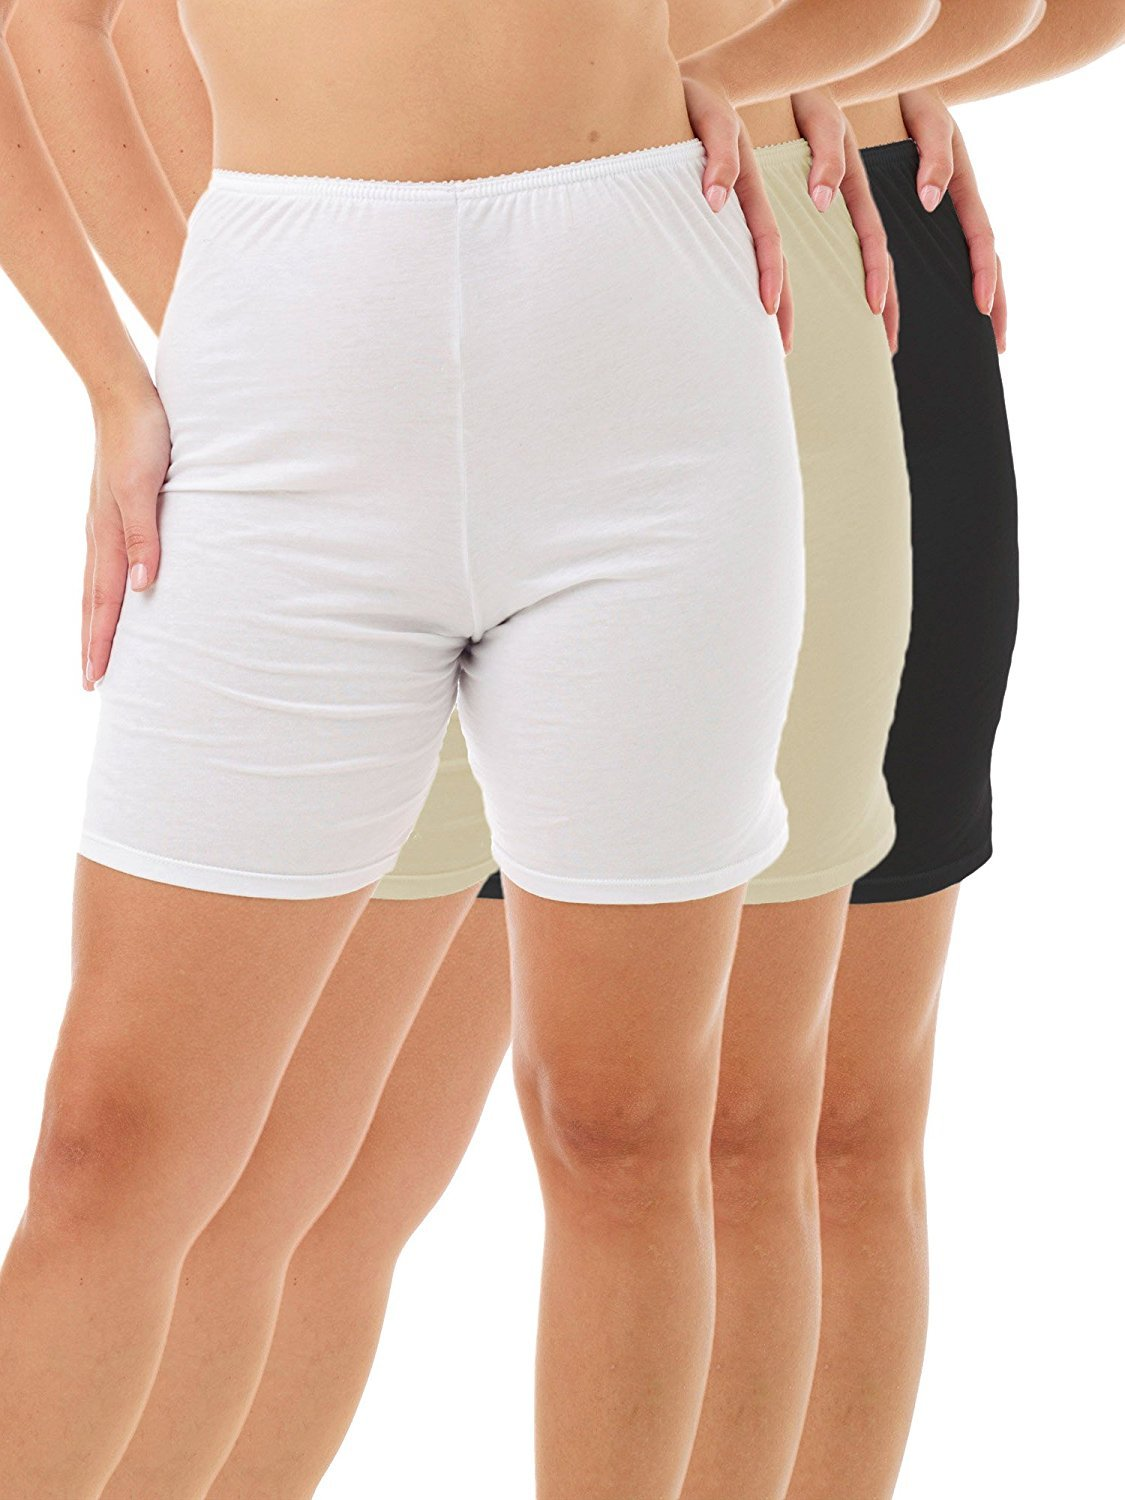 Underworks Womens 100% Cotton Cuff Leg Bloomers 8-inch Inseam White-Beige-Black 3-Pack 4X 47-48 Hips